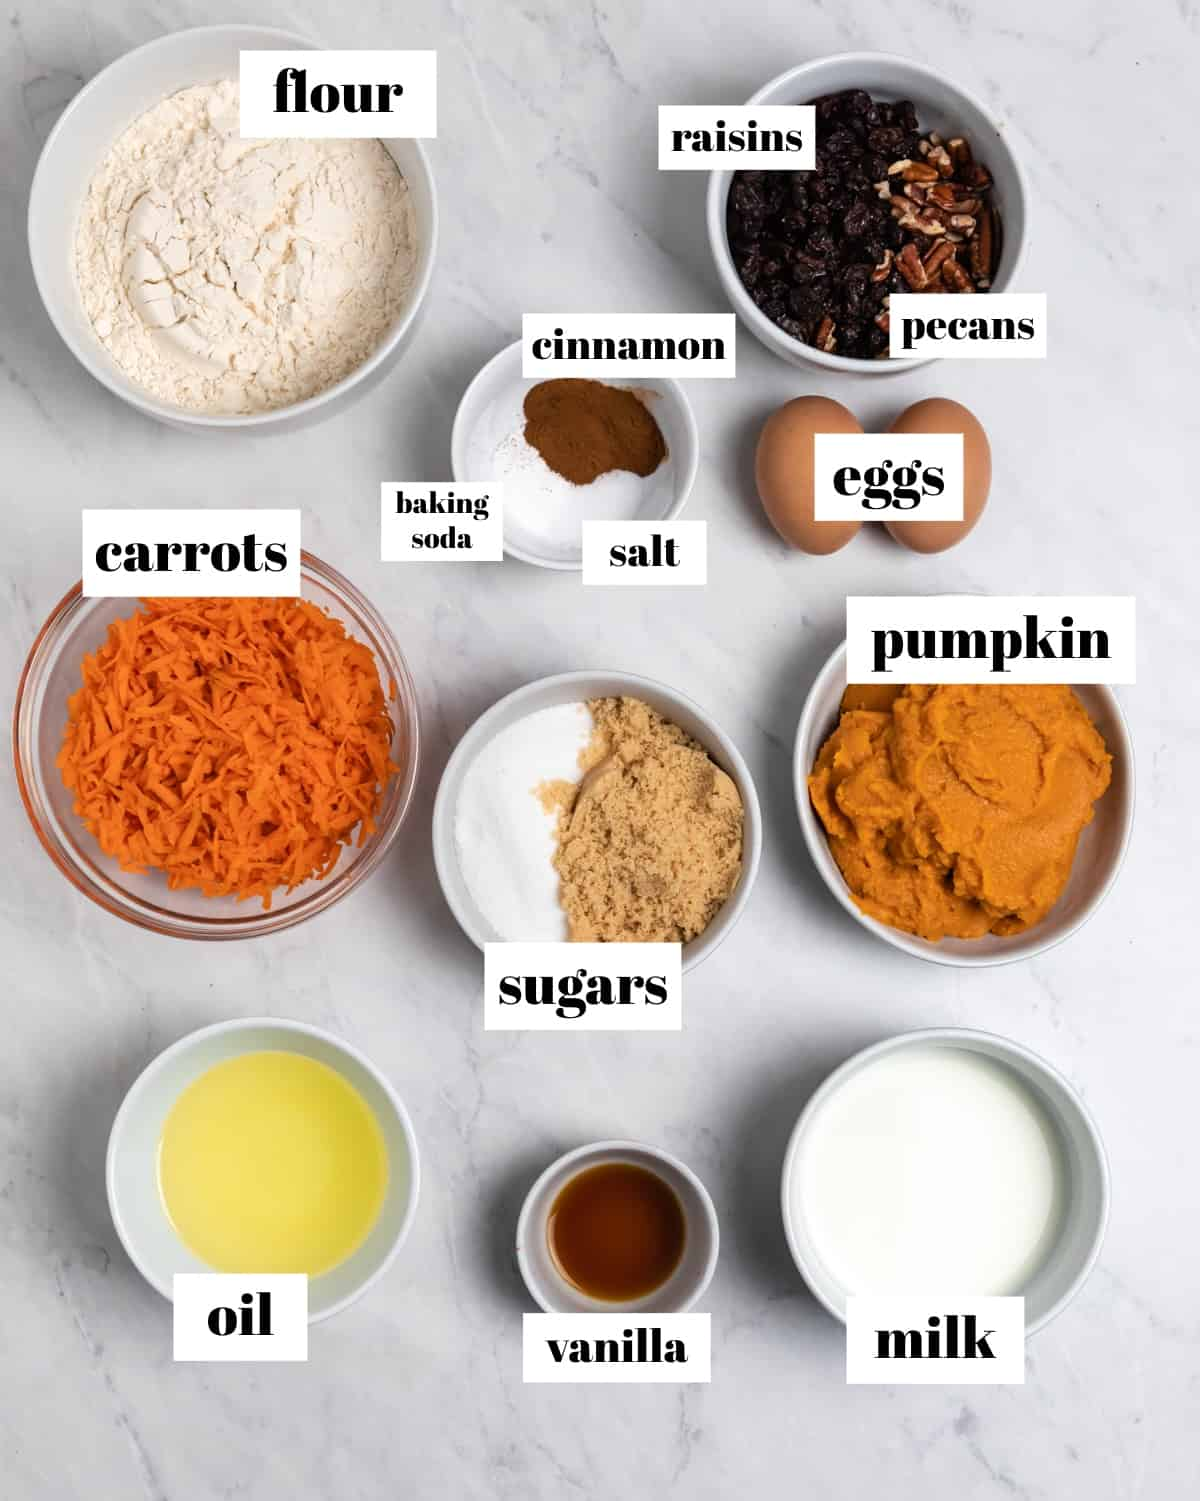 Ingredients to make muffin recipe labeled on counter.